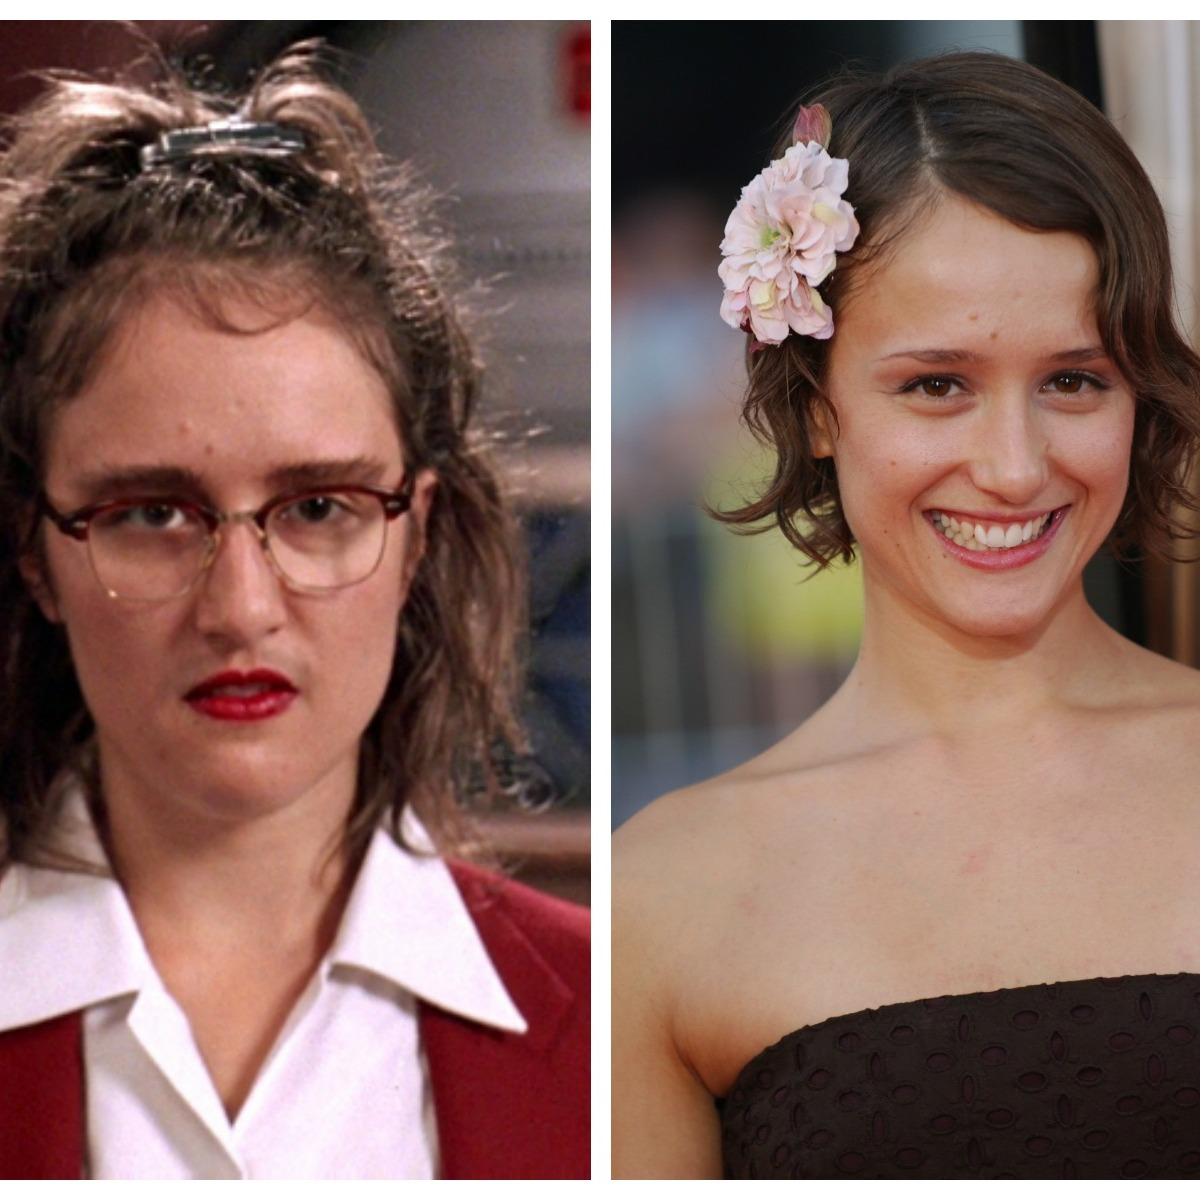 See What the Secondary Characters in 'Mean Girls' Look Like